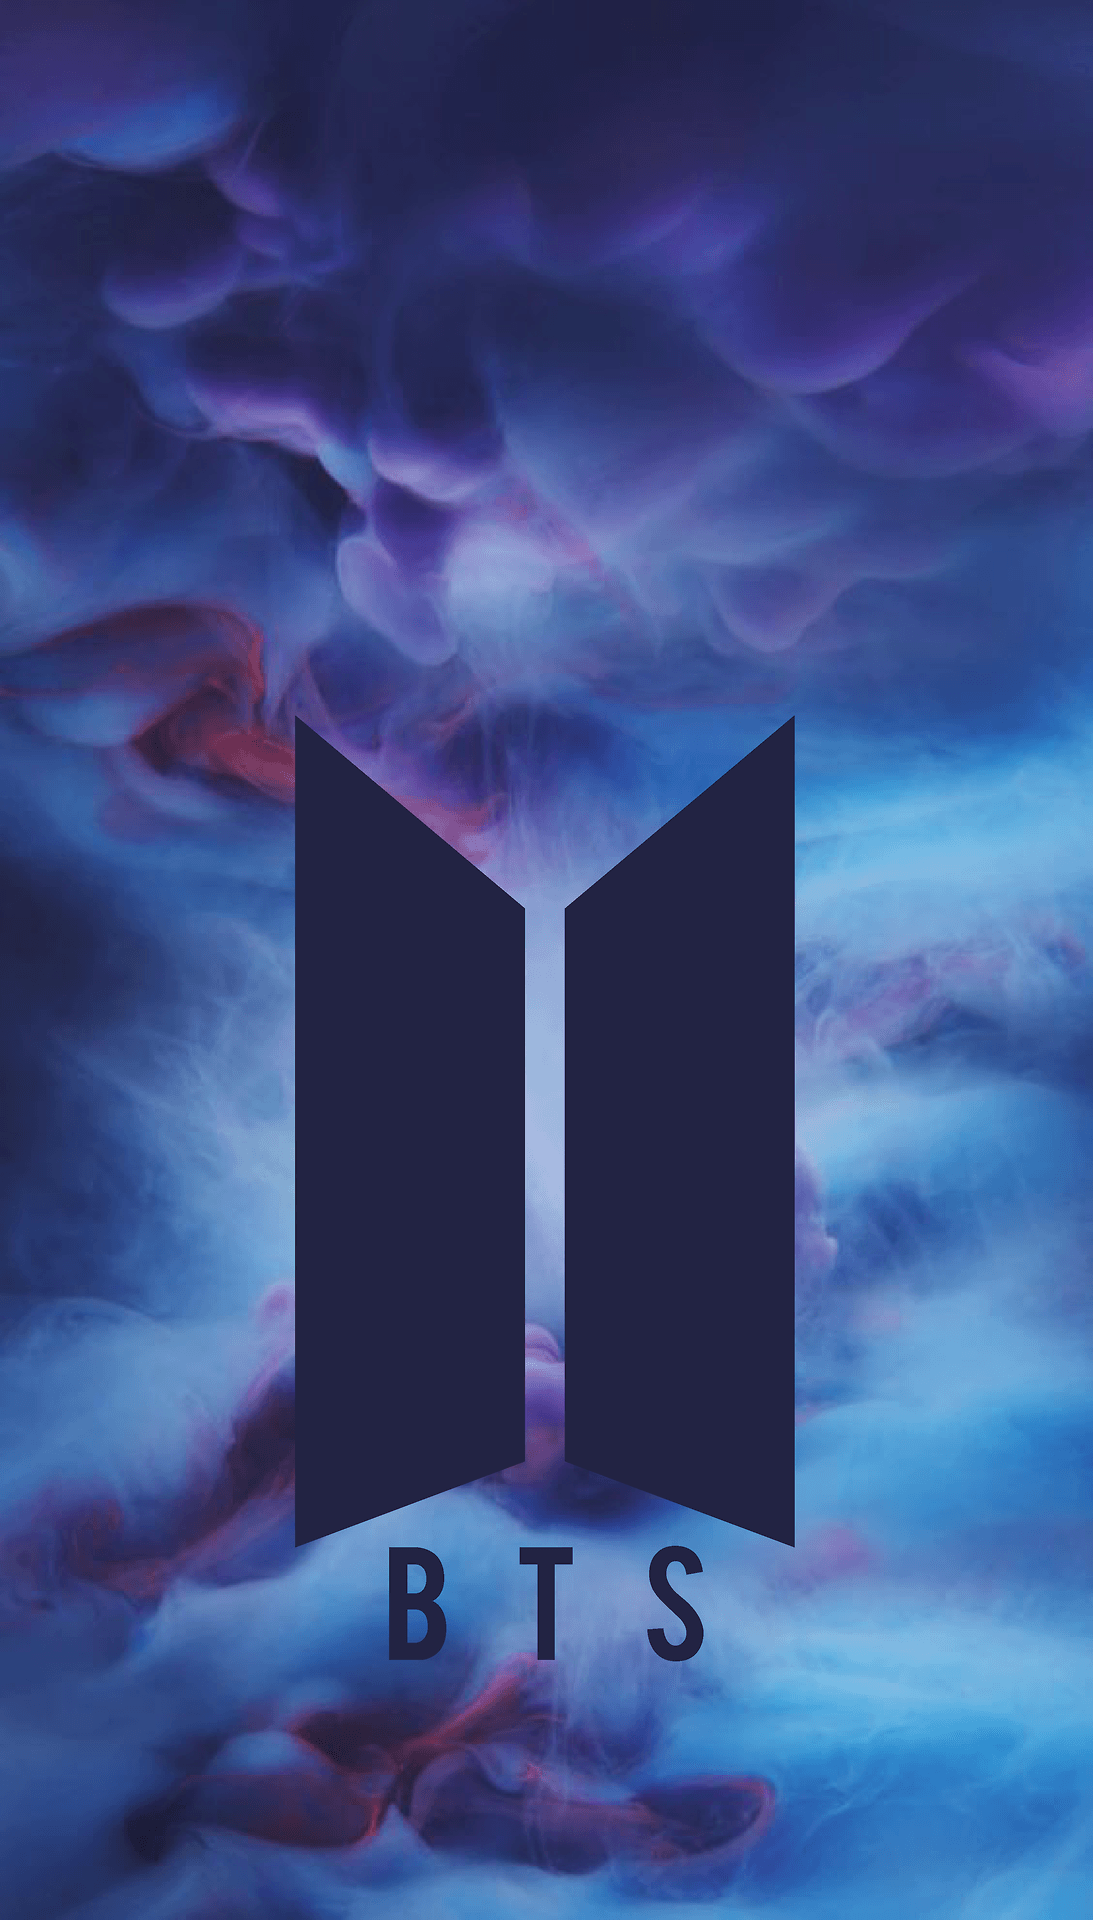 BTS Aesthetic Wallpapers - Top Free BTS Aesthetic ...